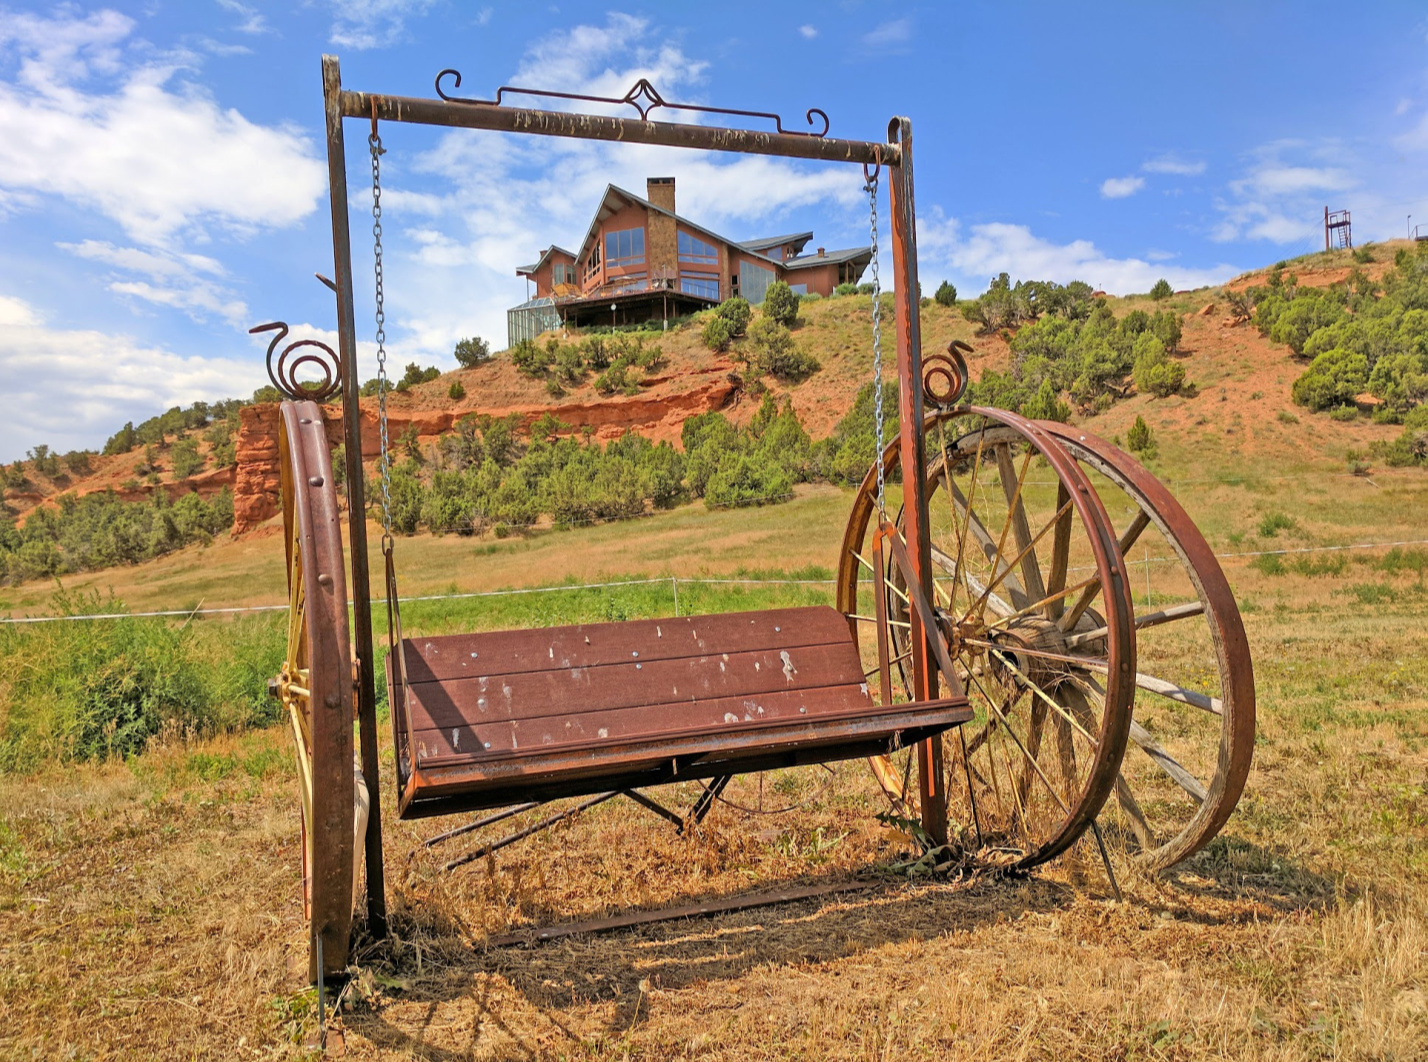 Wild West vacation at Red Reflet Ranch will deliver on traditional western charm and conveniences of today.